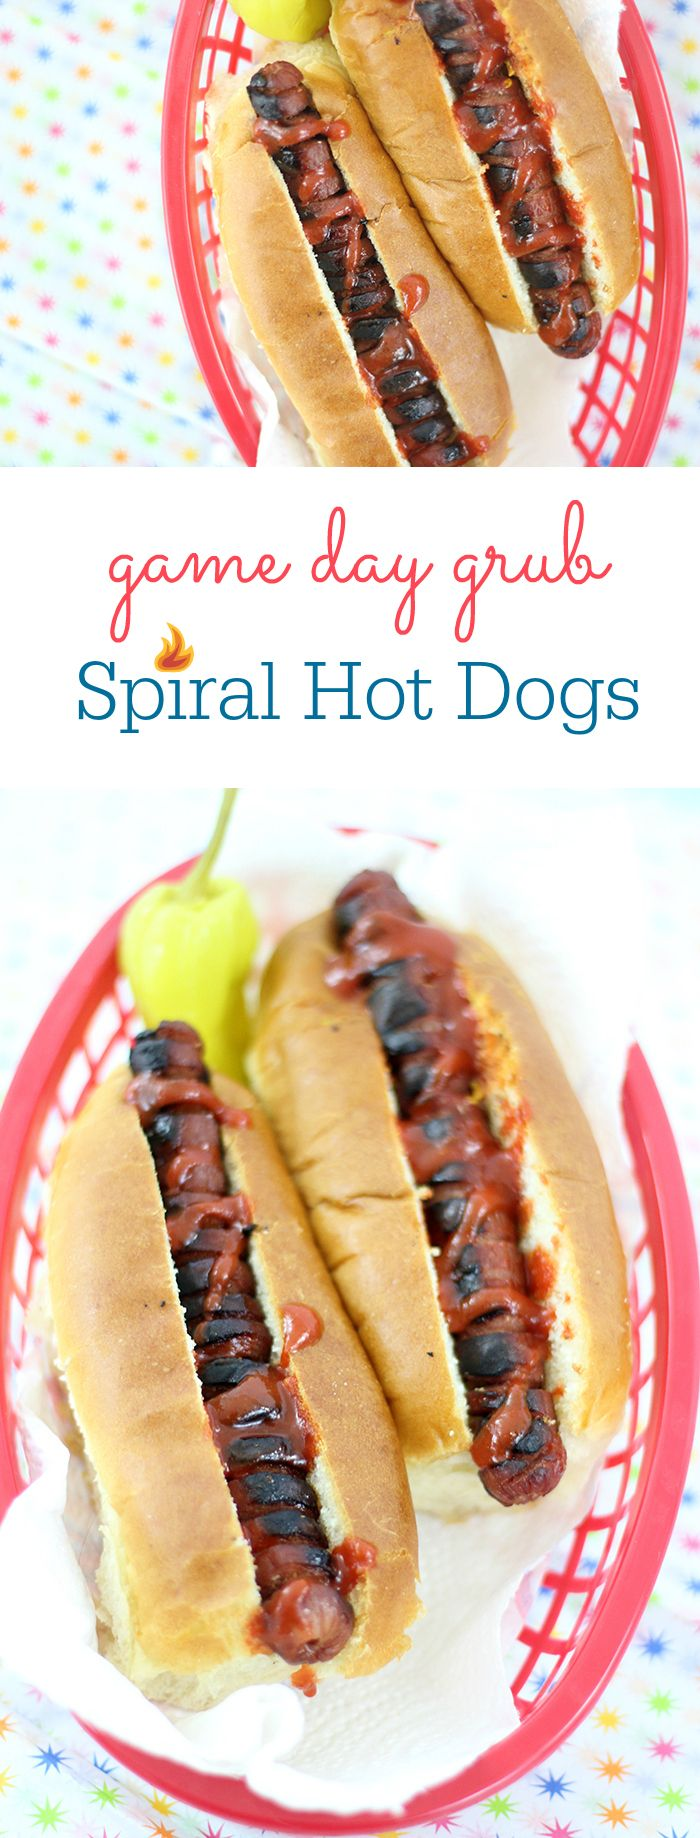 Spiral Hot Dogs. Easy way to get game day grub for your gatherings. Get ideas on how to show game day spirit at home. AD #CareForYourTurf